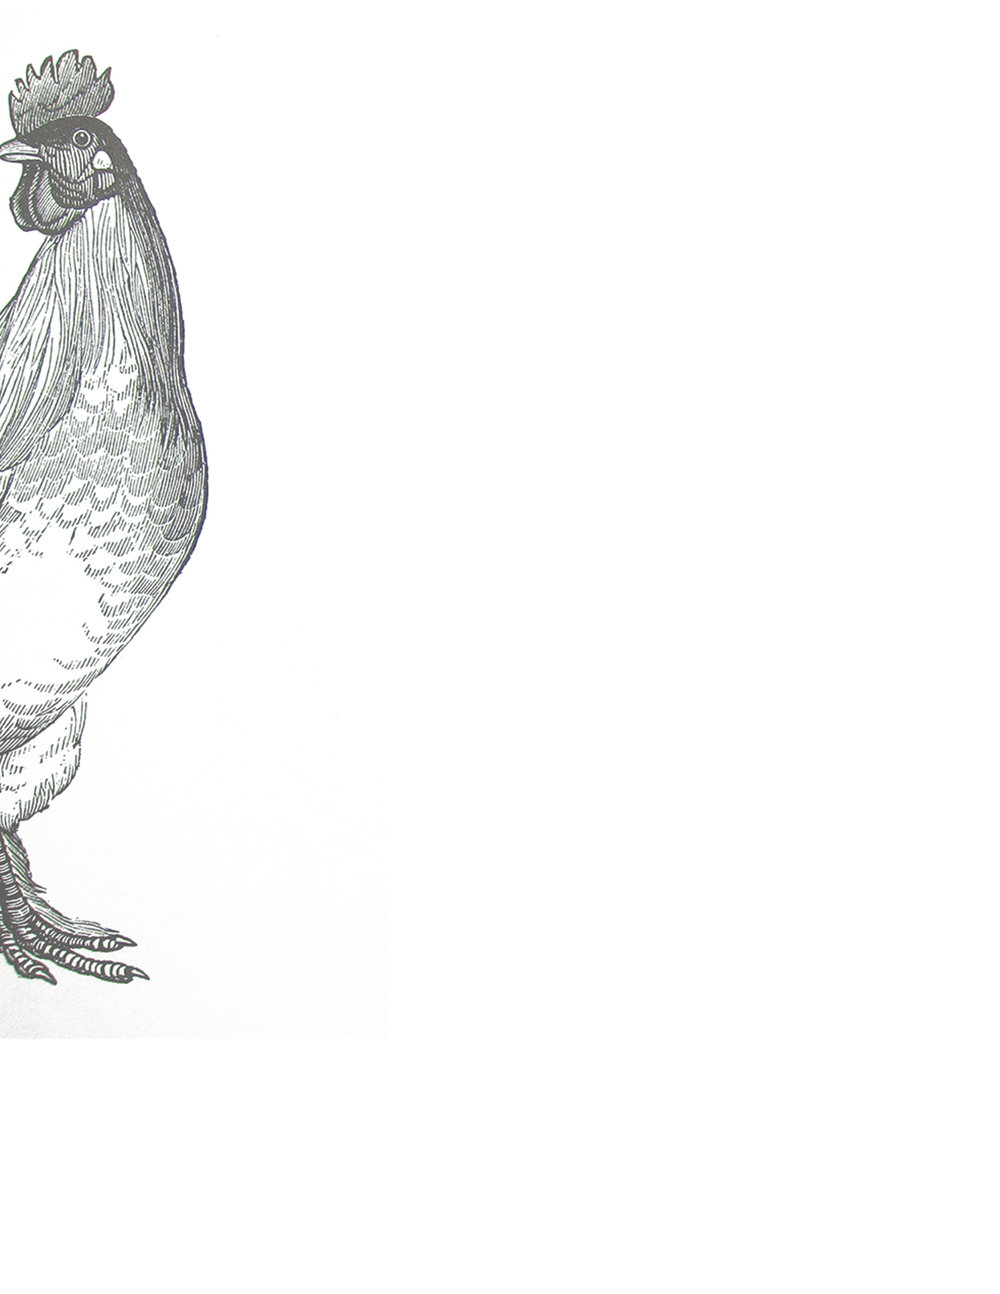 ROOSTER_02_LO_RES.jpg